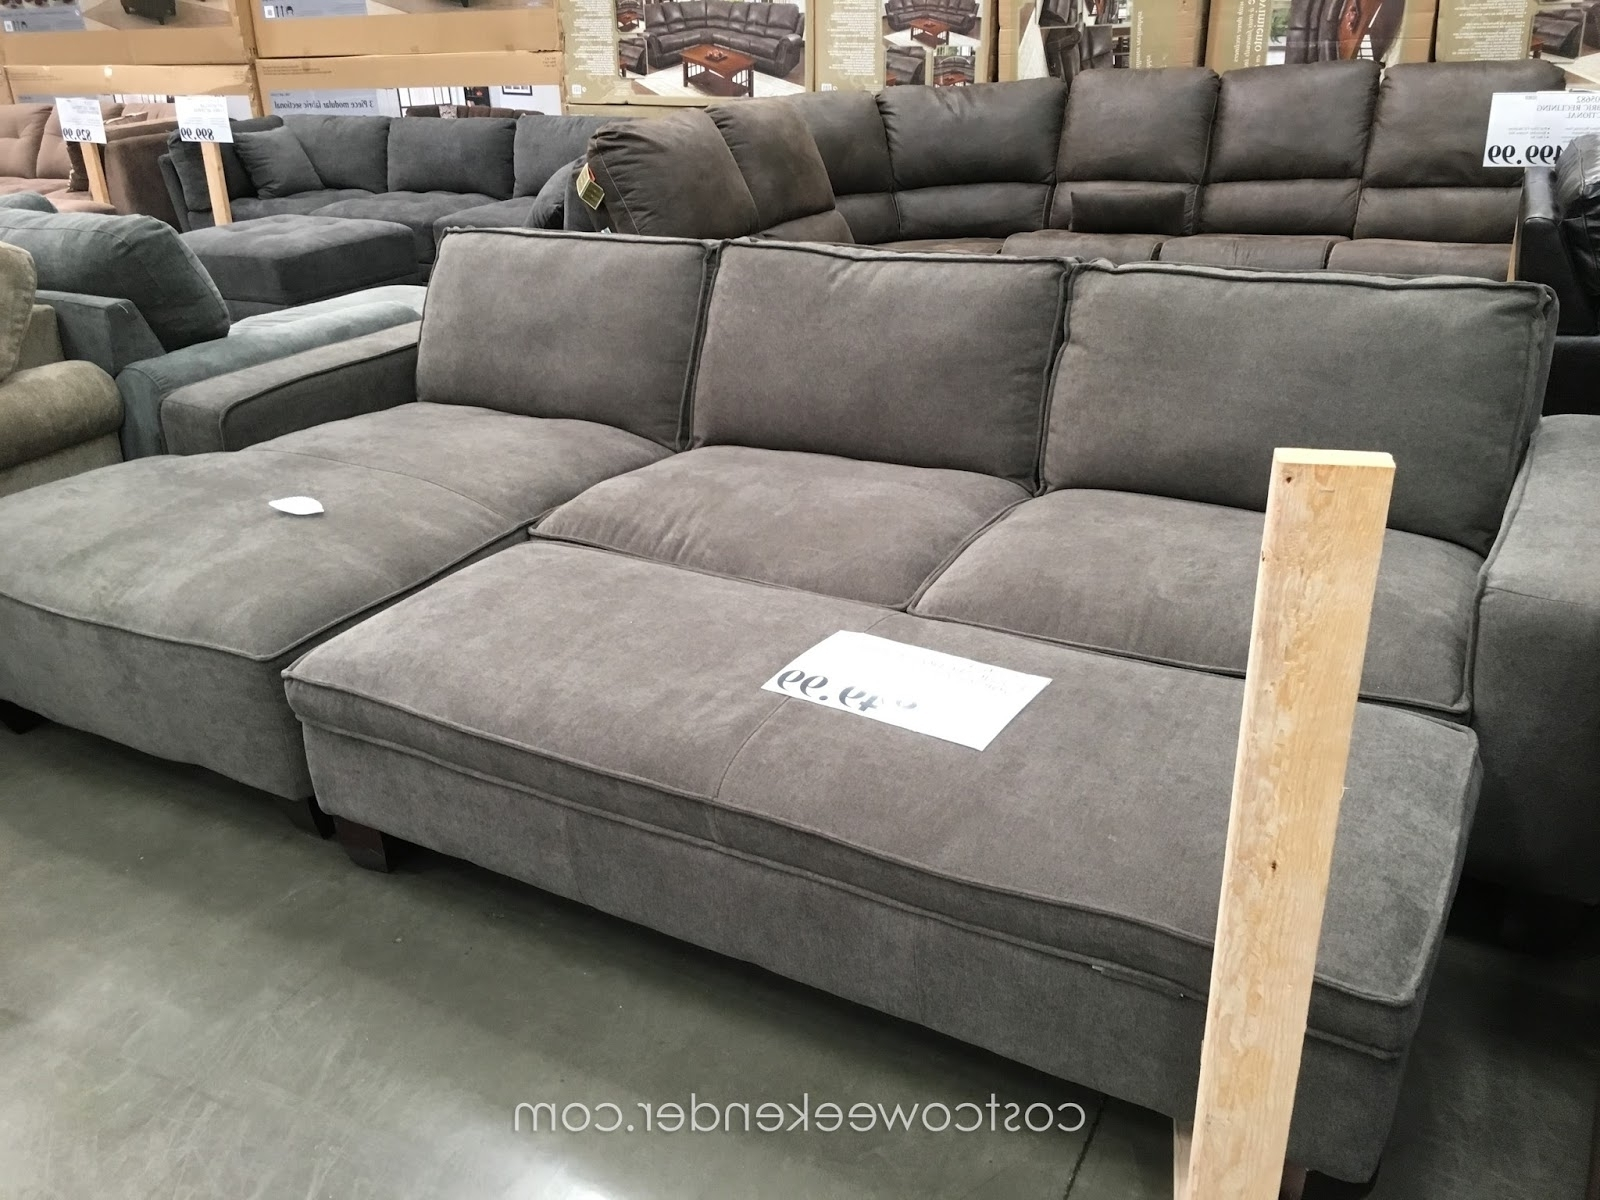 2018 Latest Sectional Sofas With Chaise And Ottoman